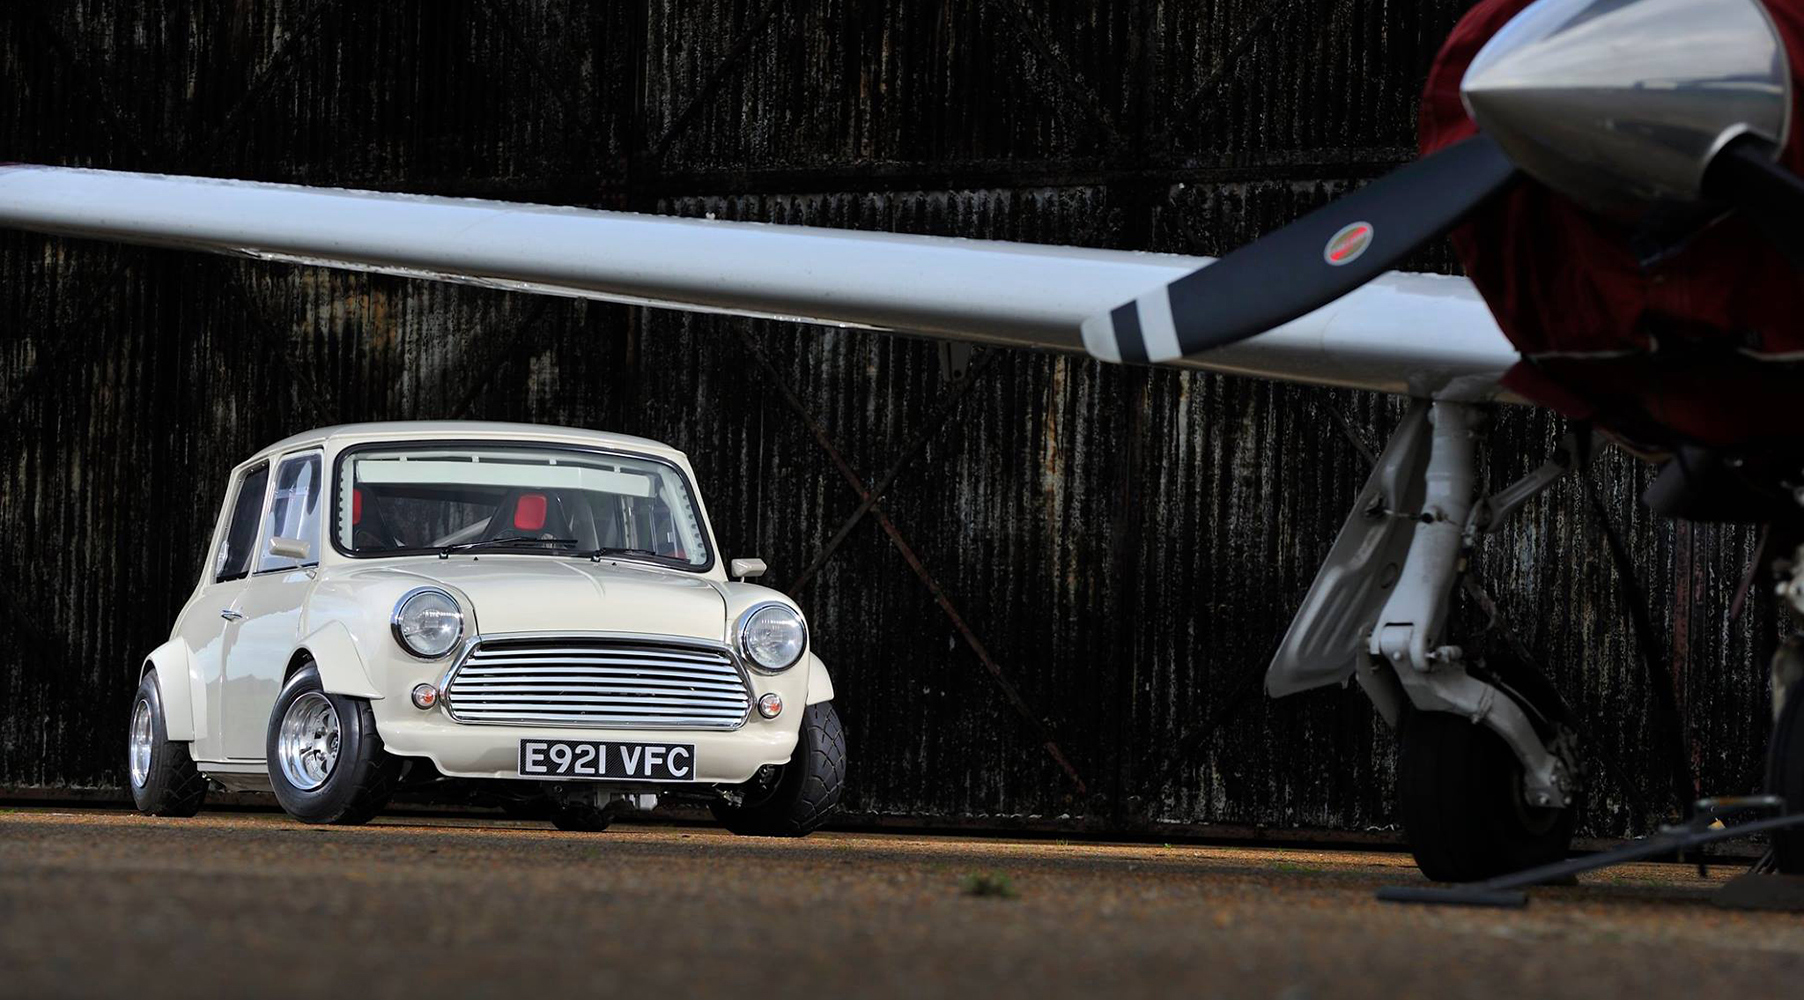 Alan Carruthers' Amazing bike engined mini